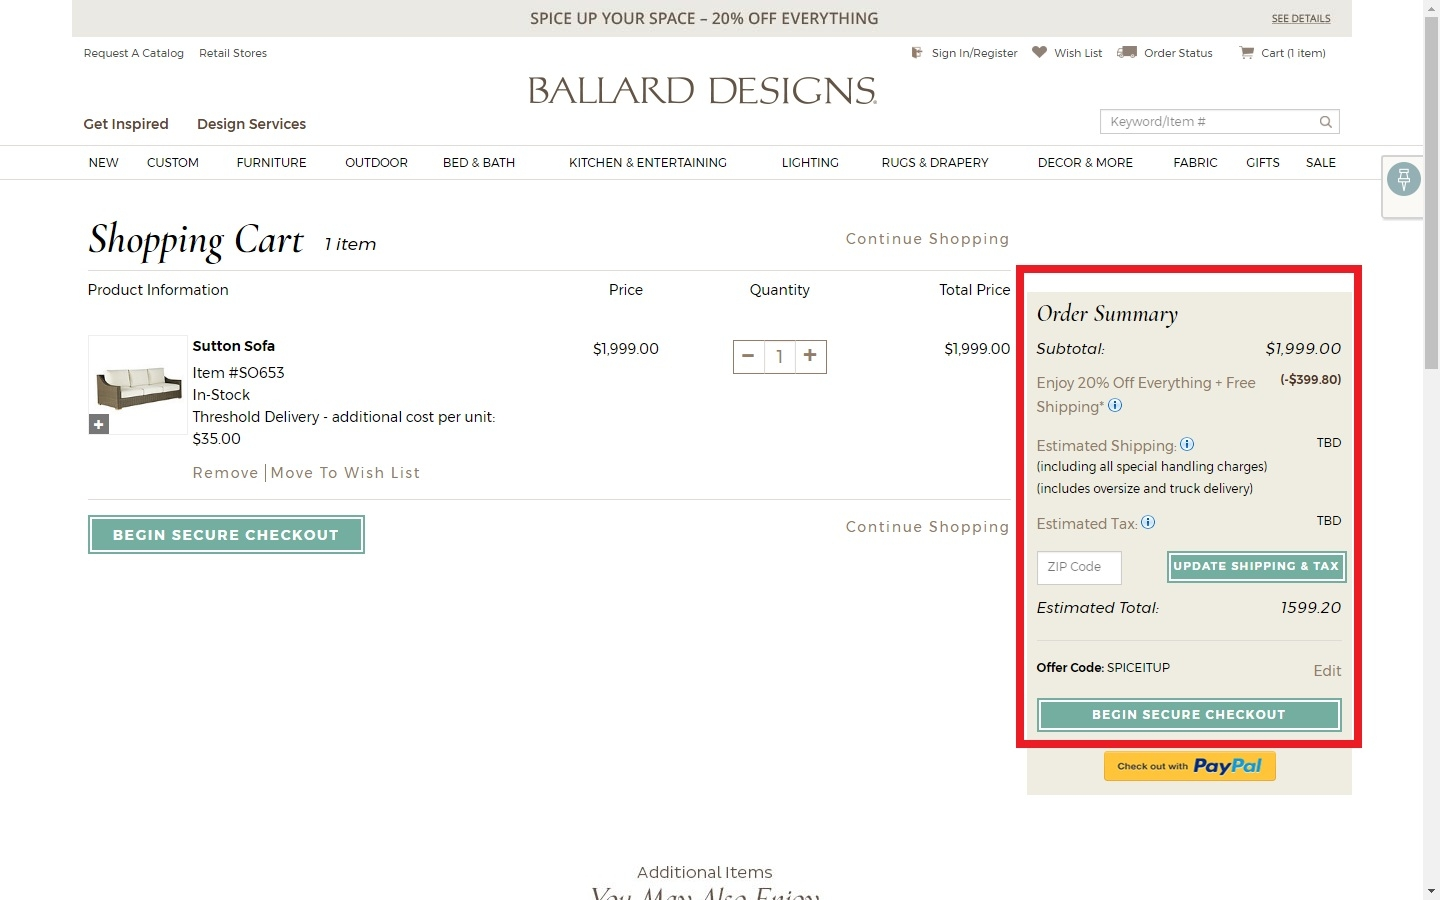 Ballard designs coupon code